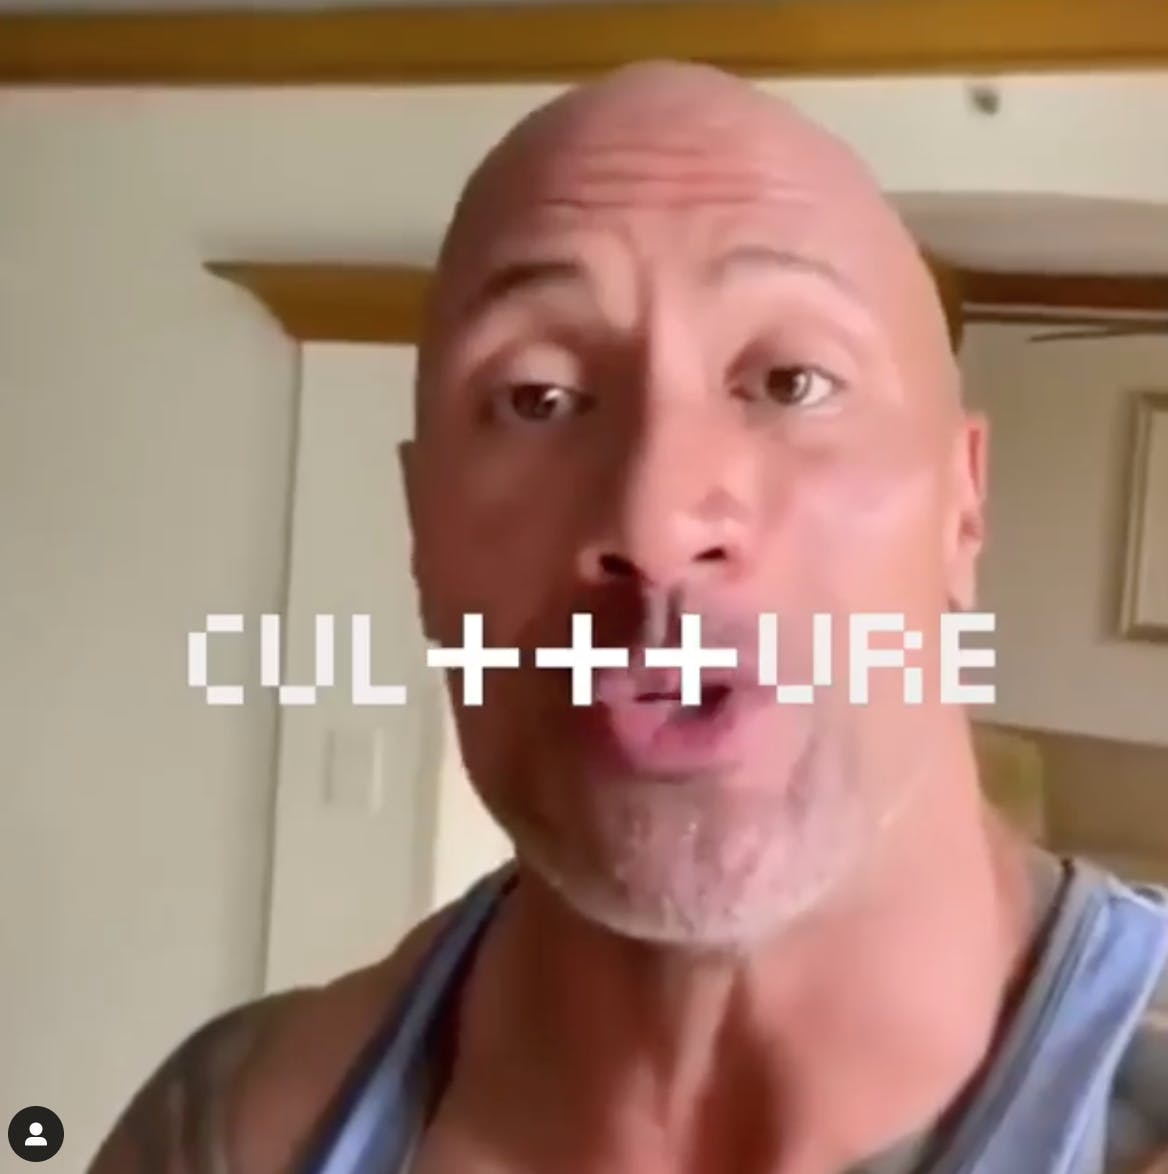 the rock culttture